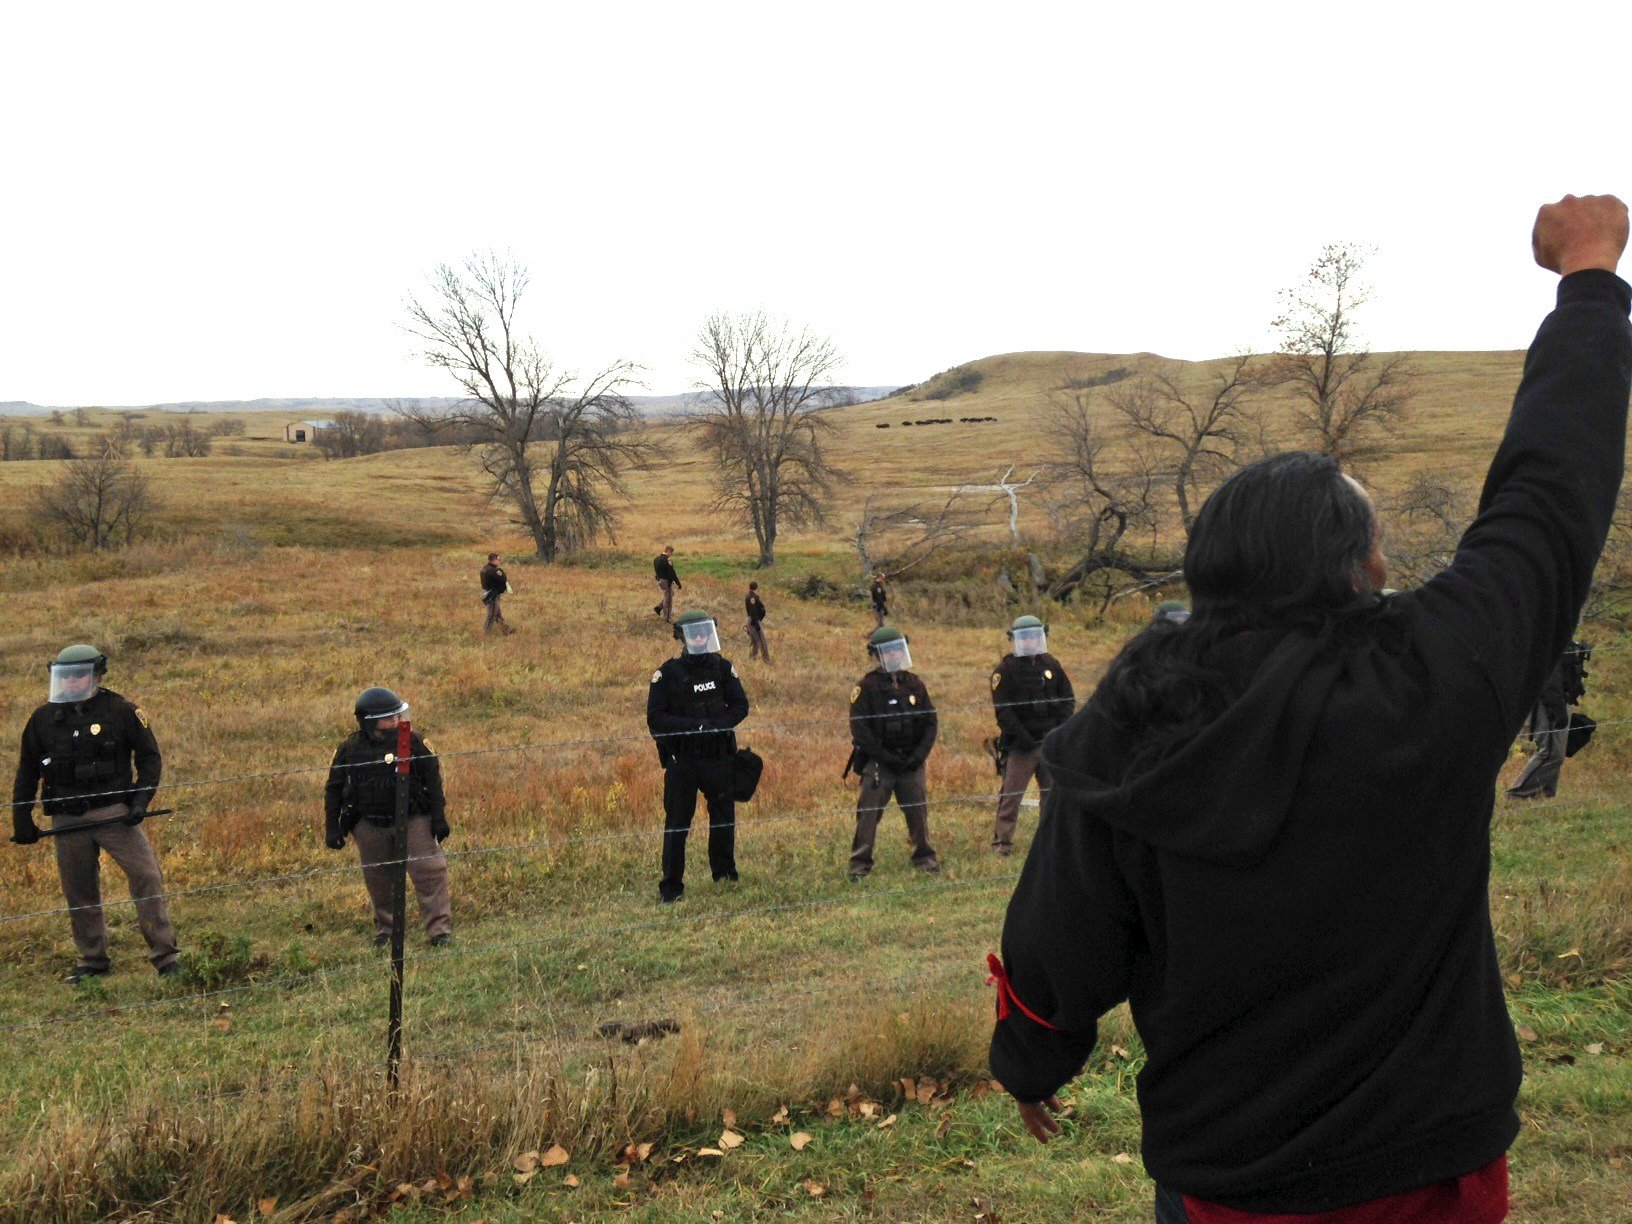 A Dakota Access pipeline protester defies law enforcement officers who are trying to force them from a camp on private land in the path of pipeline construction, Thursday, Oct. 27, 2016 near Cannon Ball, N.D. Soldiers and law enforcement officers dressed